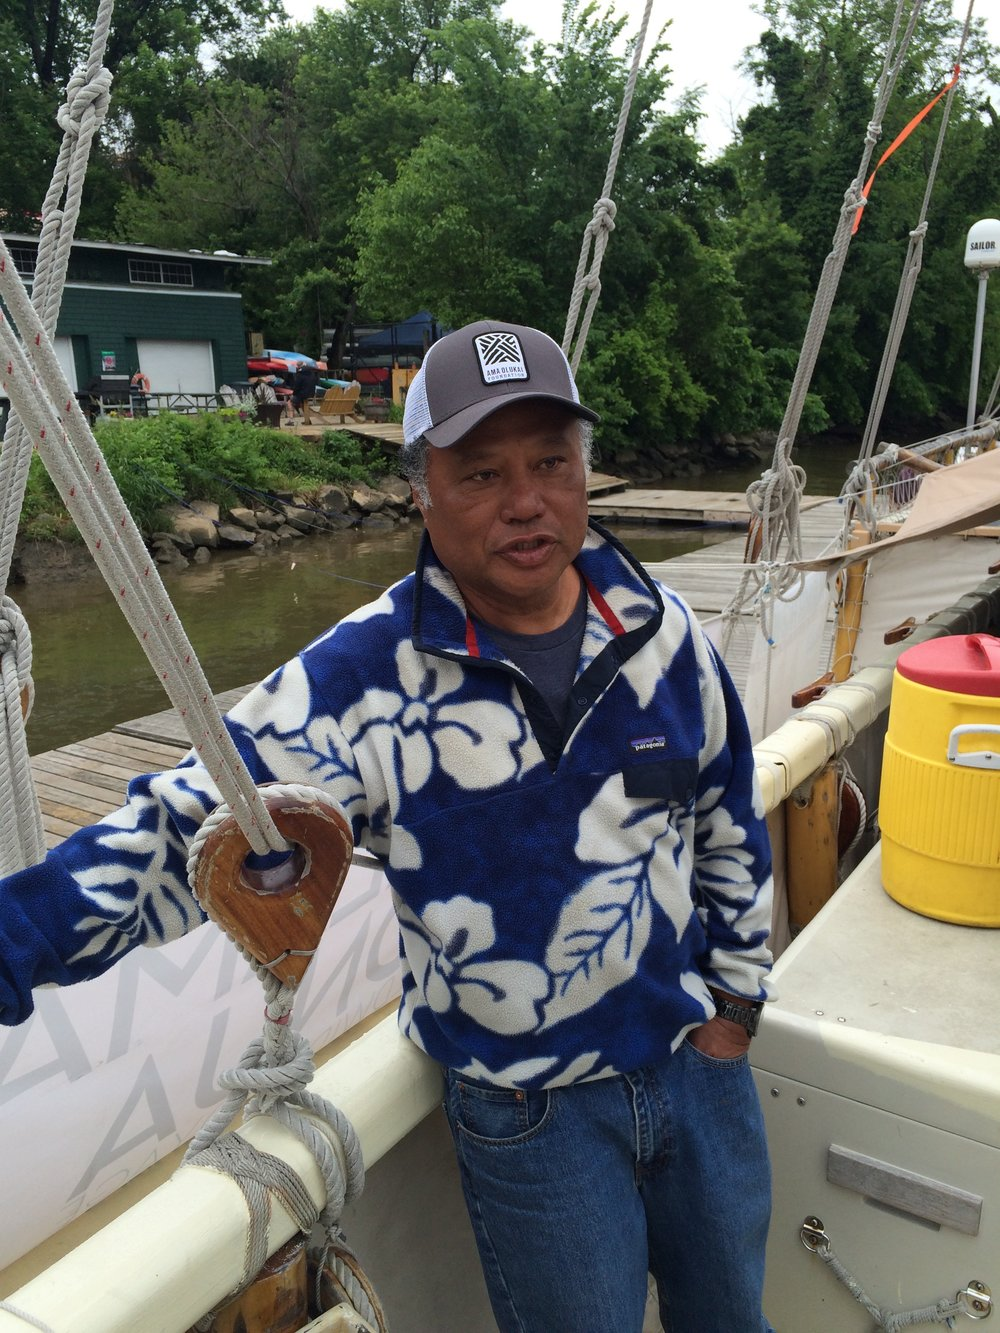 Pwo Navigator Chad Baybayan reflects on the historic voyage onboard the Hokule'a